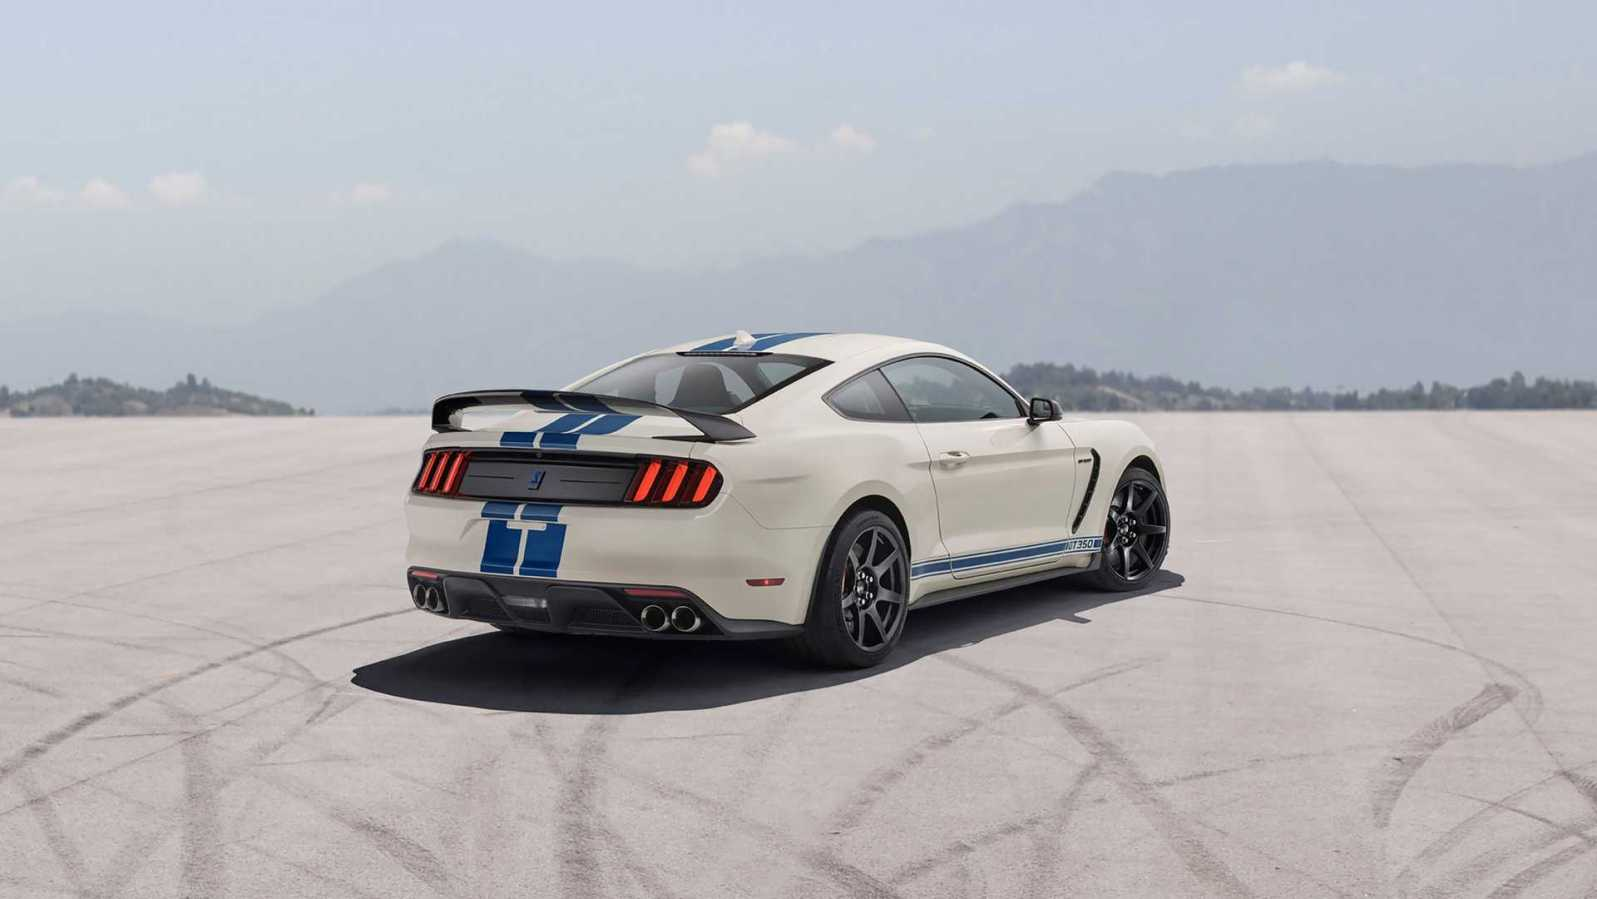 Ford Mustang Shelby Gt350 Gt350r Heritage Edition (7)